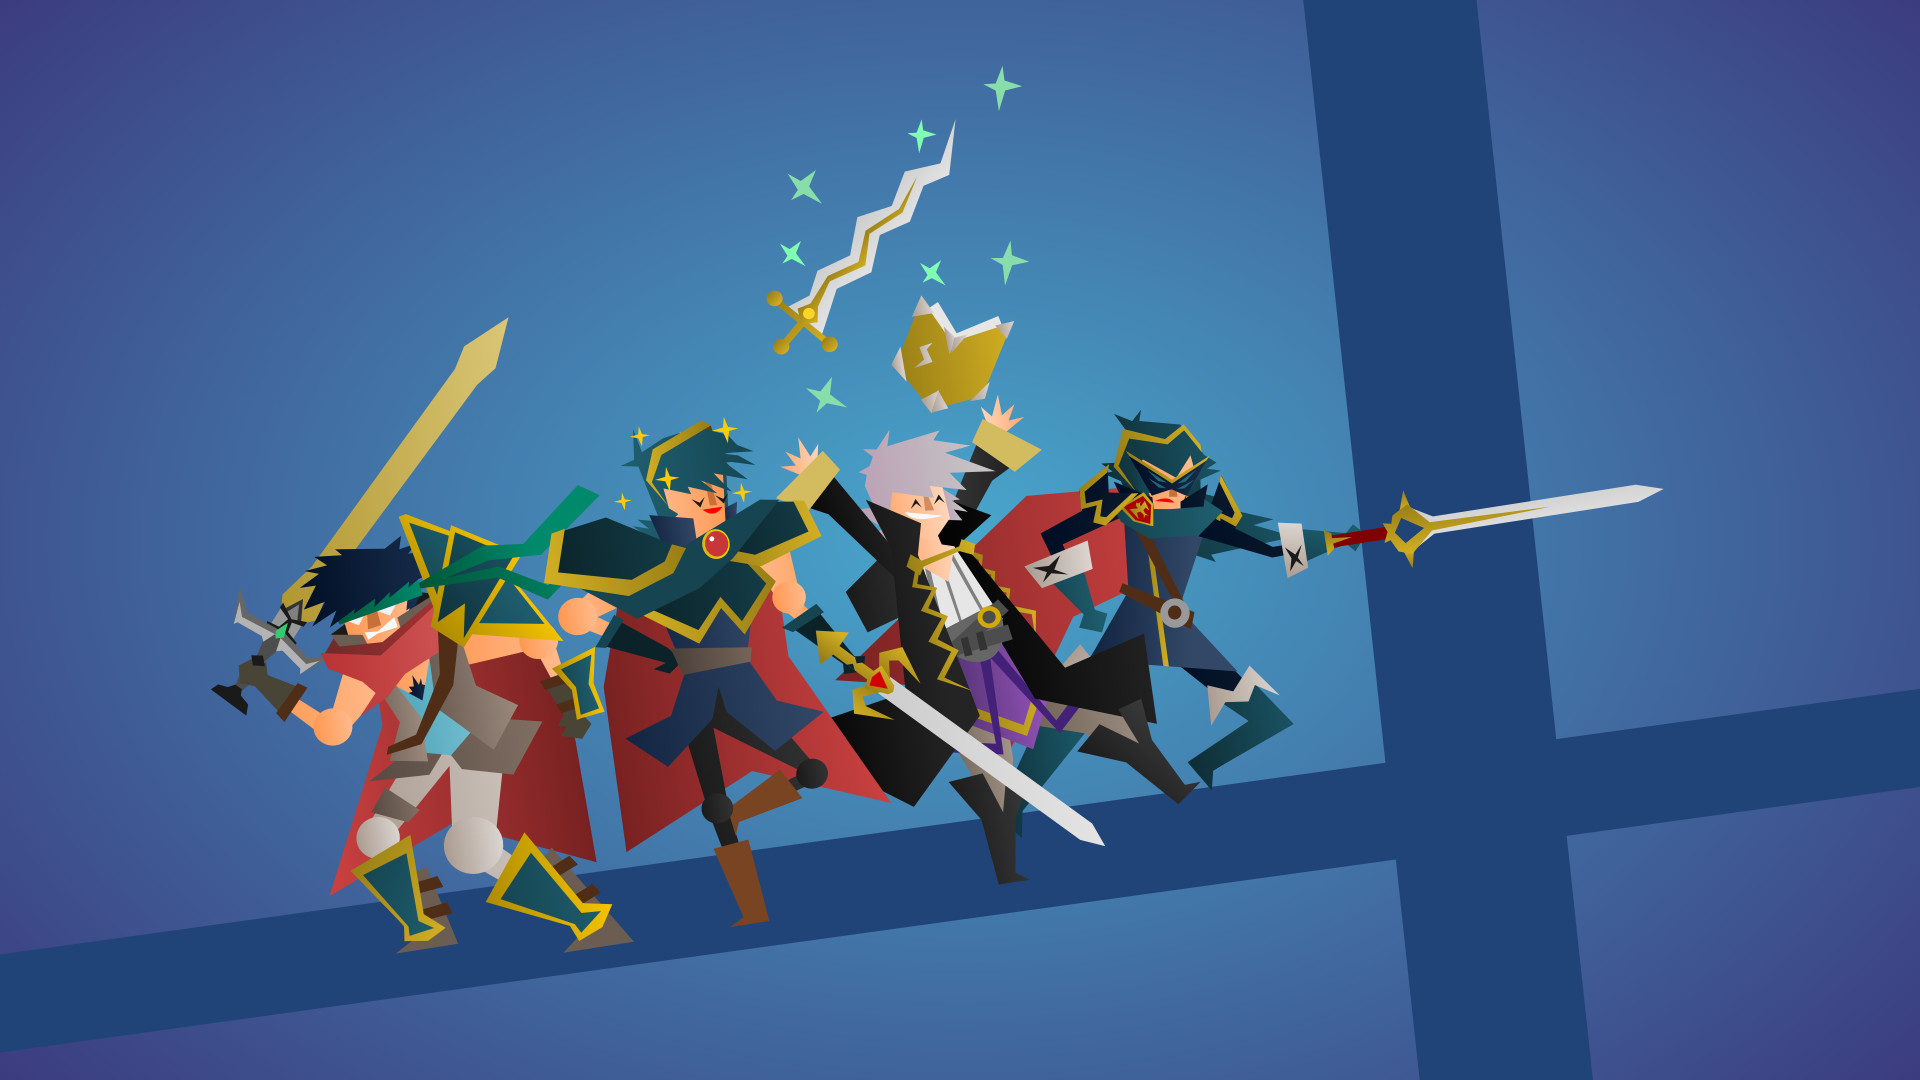 Made another pic: Fire Emblem Smashers! Tell me what you think ;*